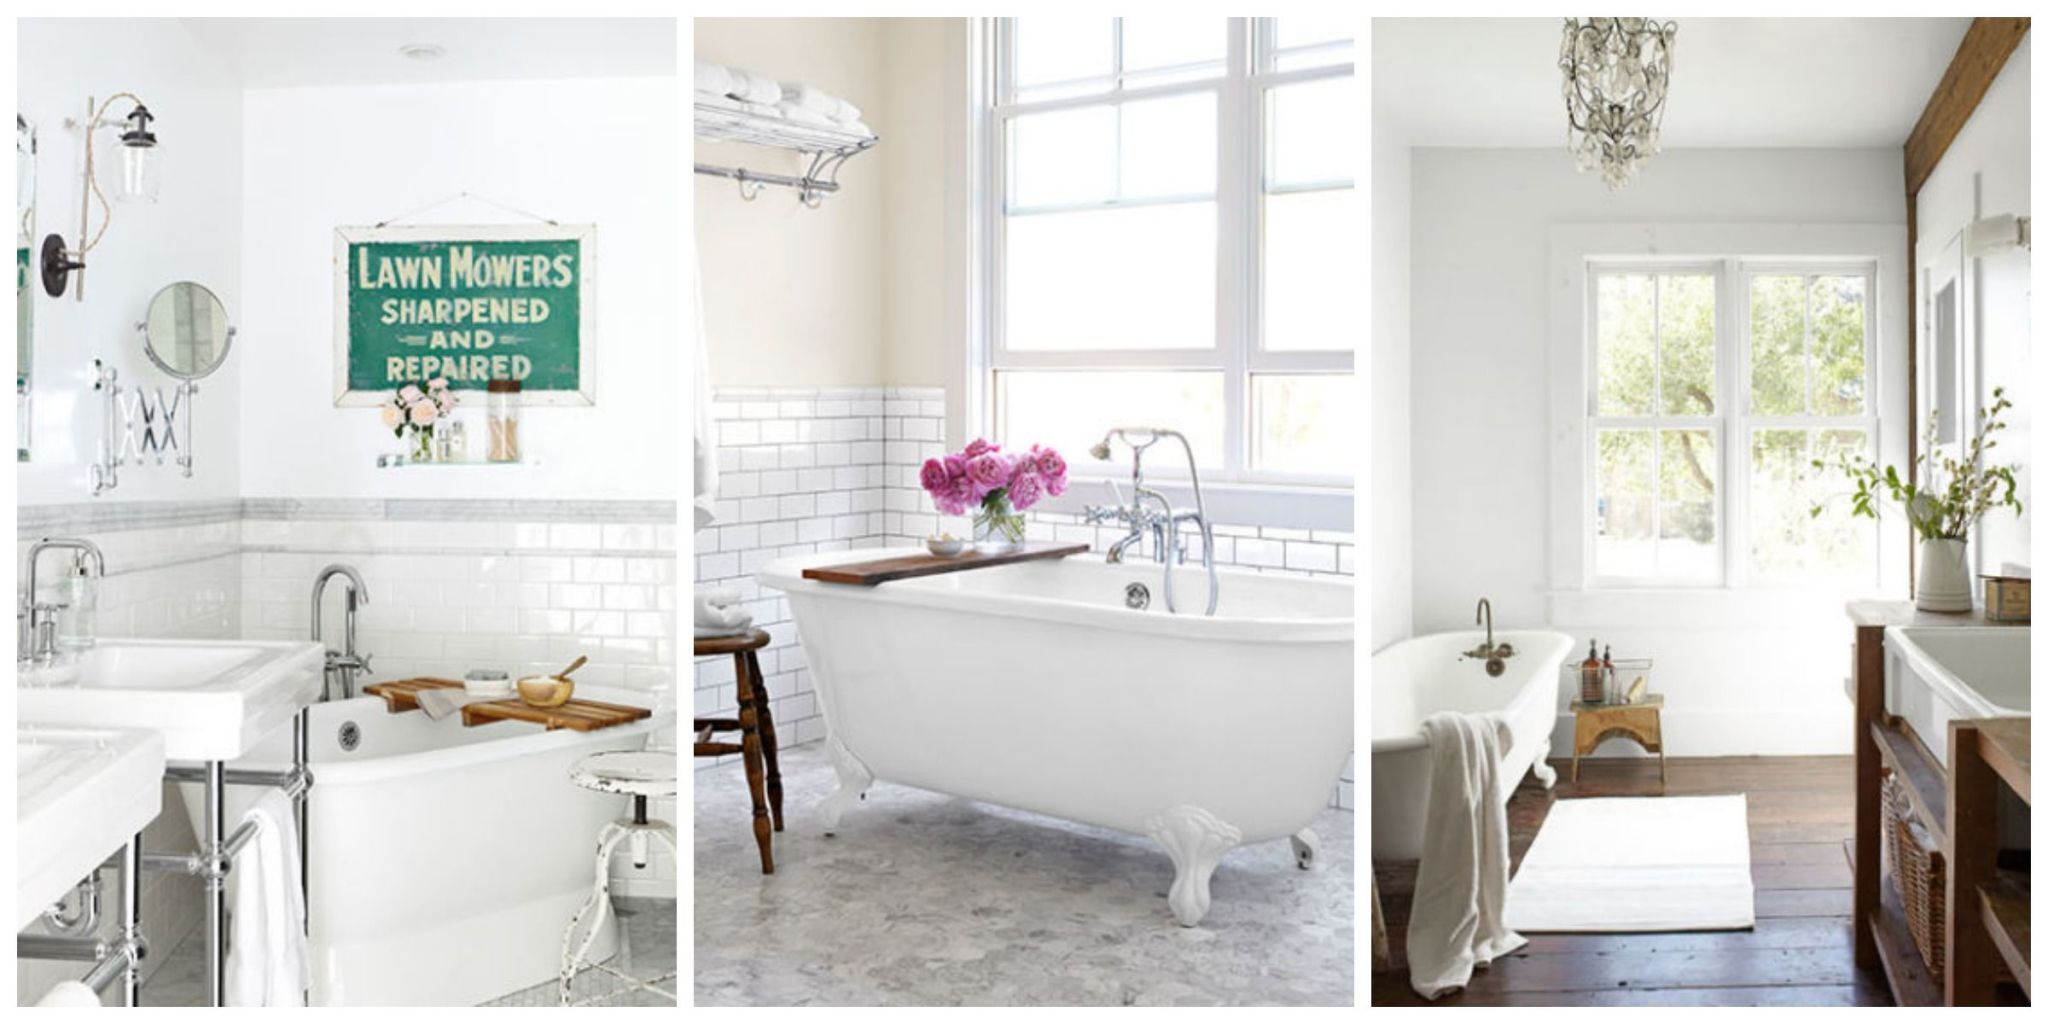 Nice Transform Your Bathroom Or Powder Room Into A Clean, Relaxing, And Bright  Space With These Decorating Tips. Plus, Get More Bathroom Ideas!